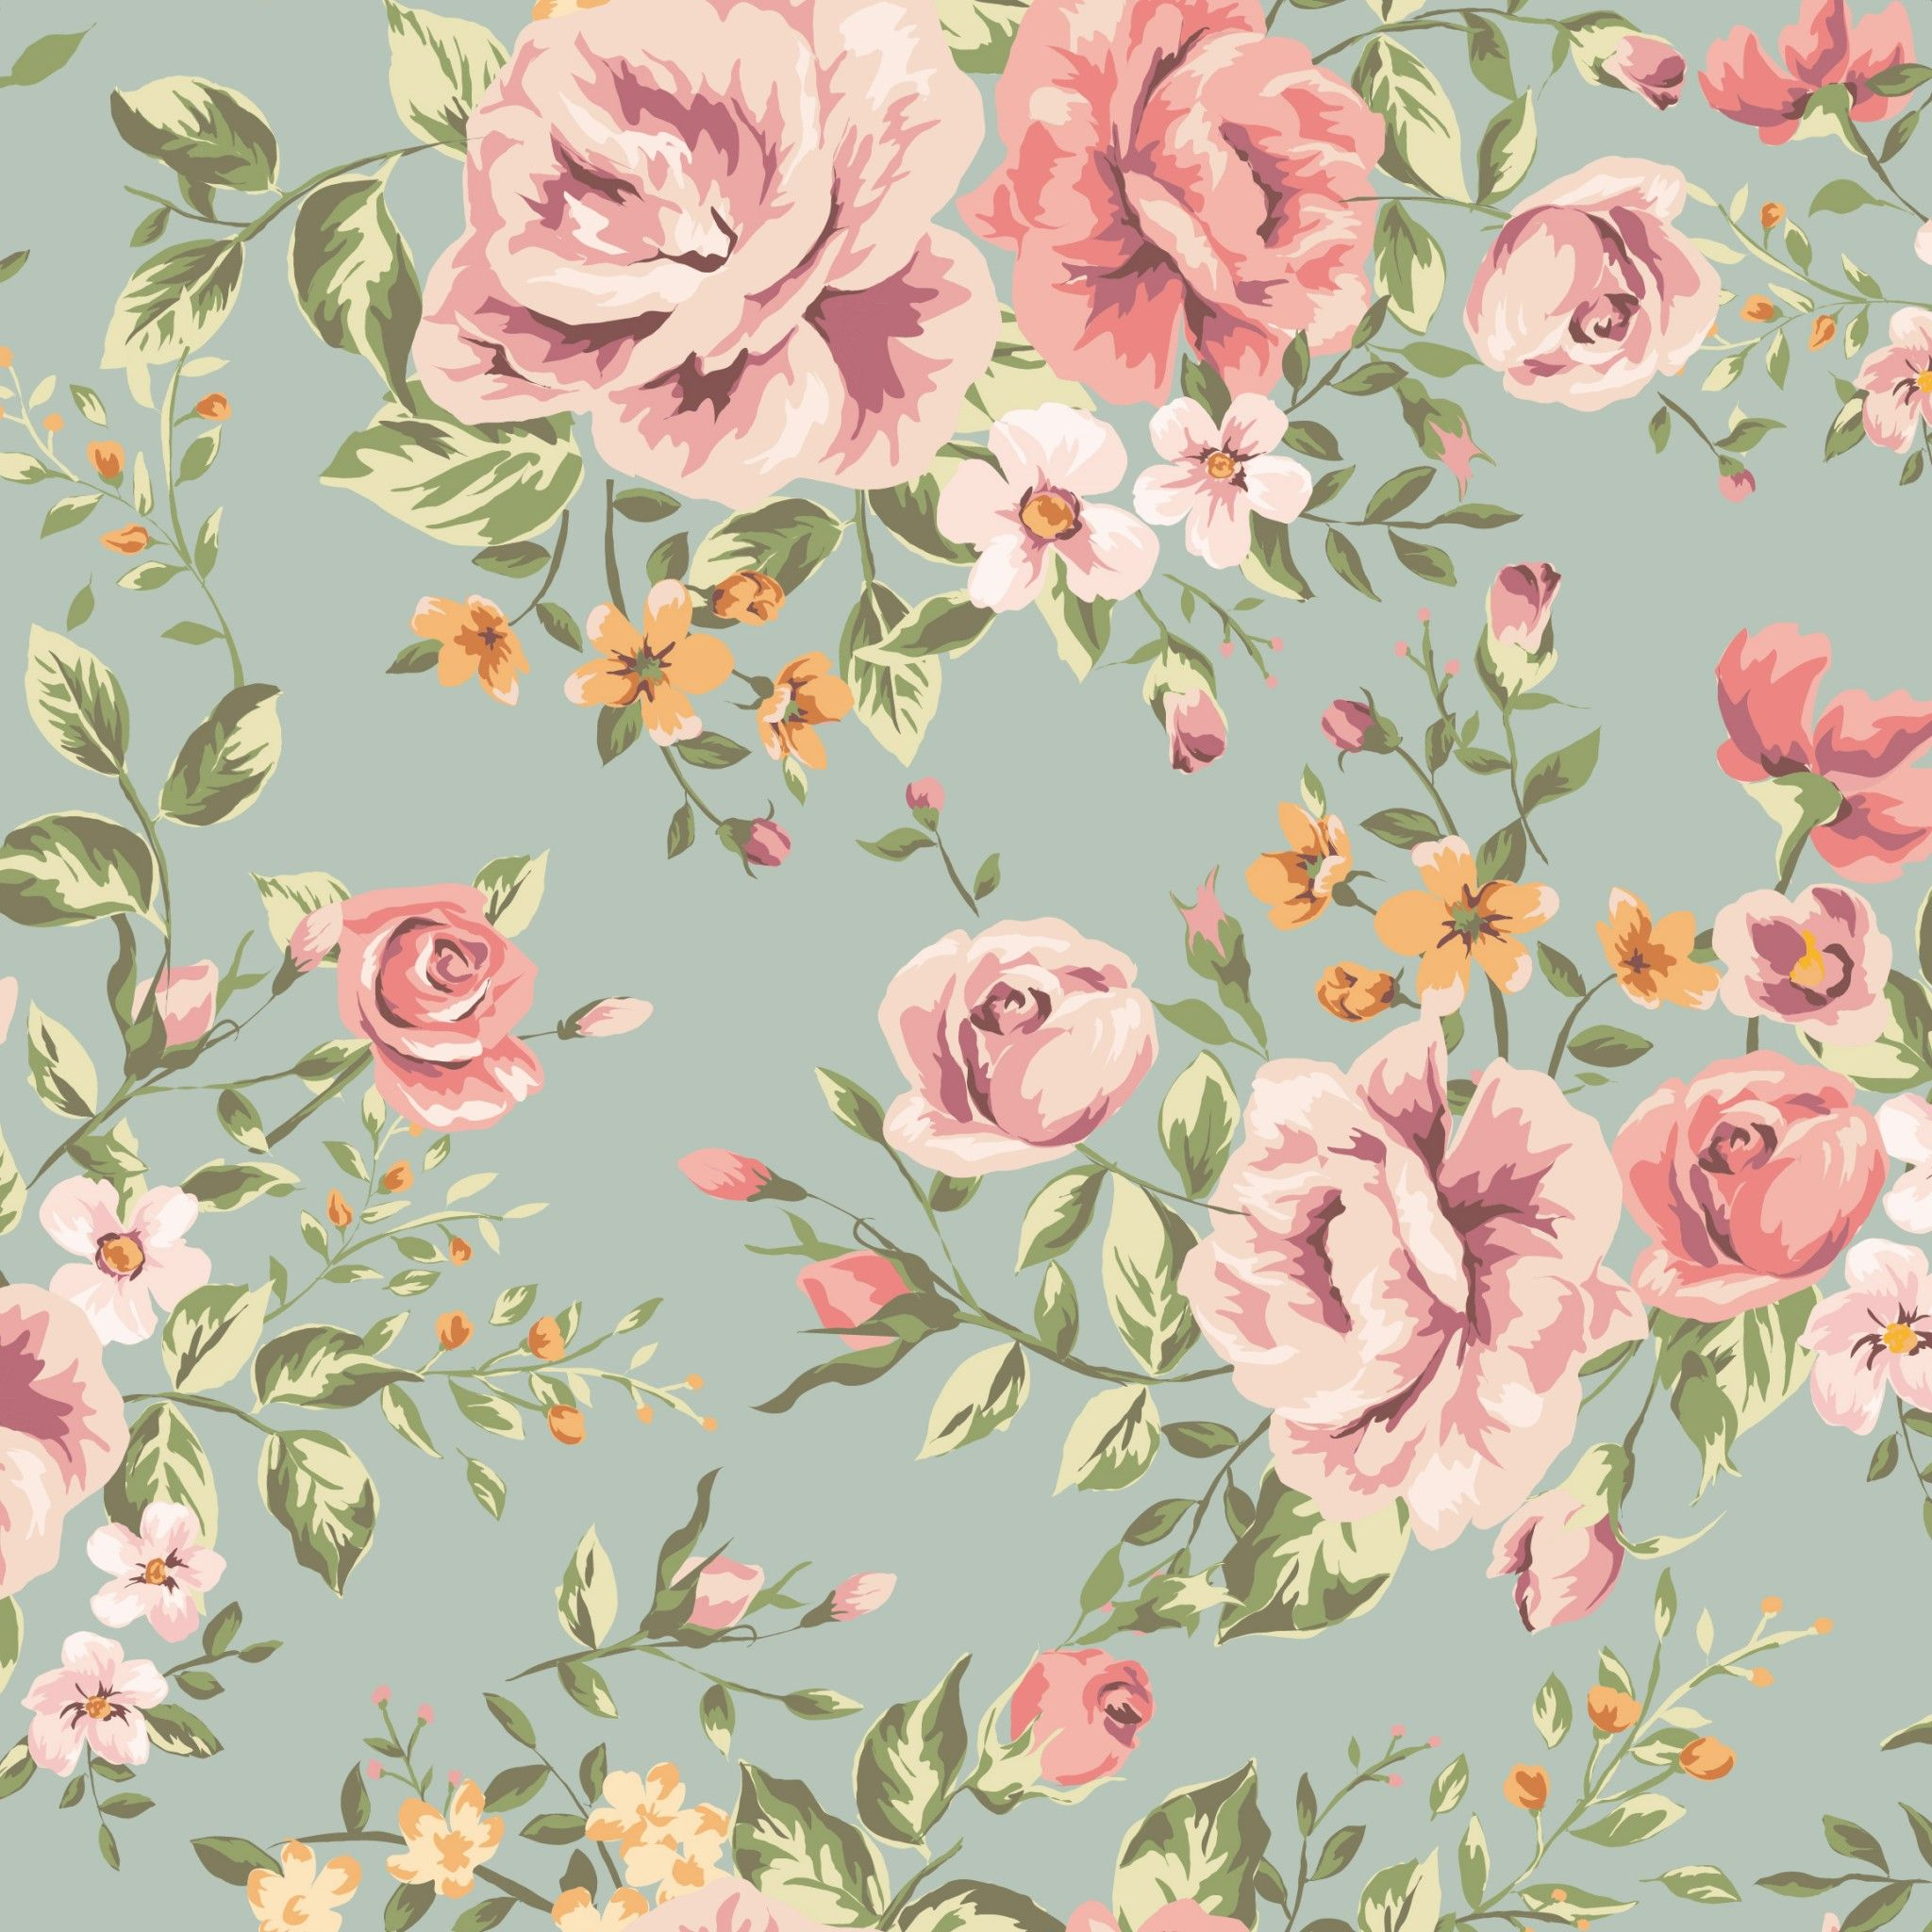 Classic Seamless Vintage Flower Pattern Tap To See More Floral